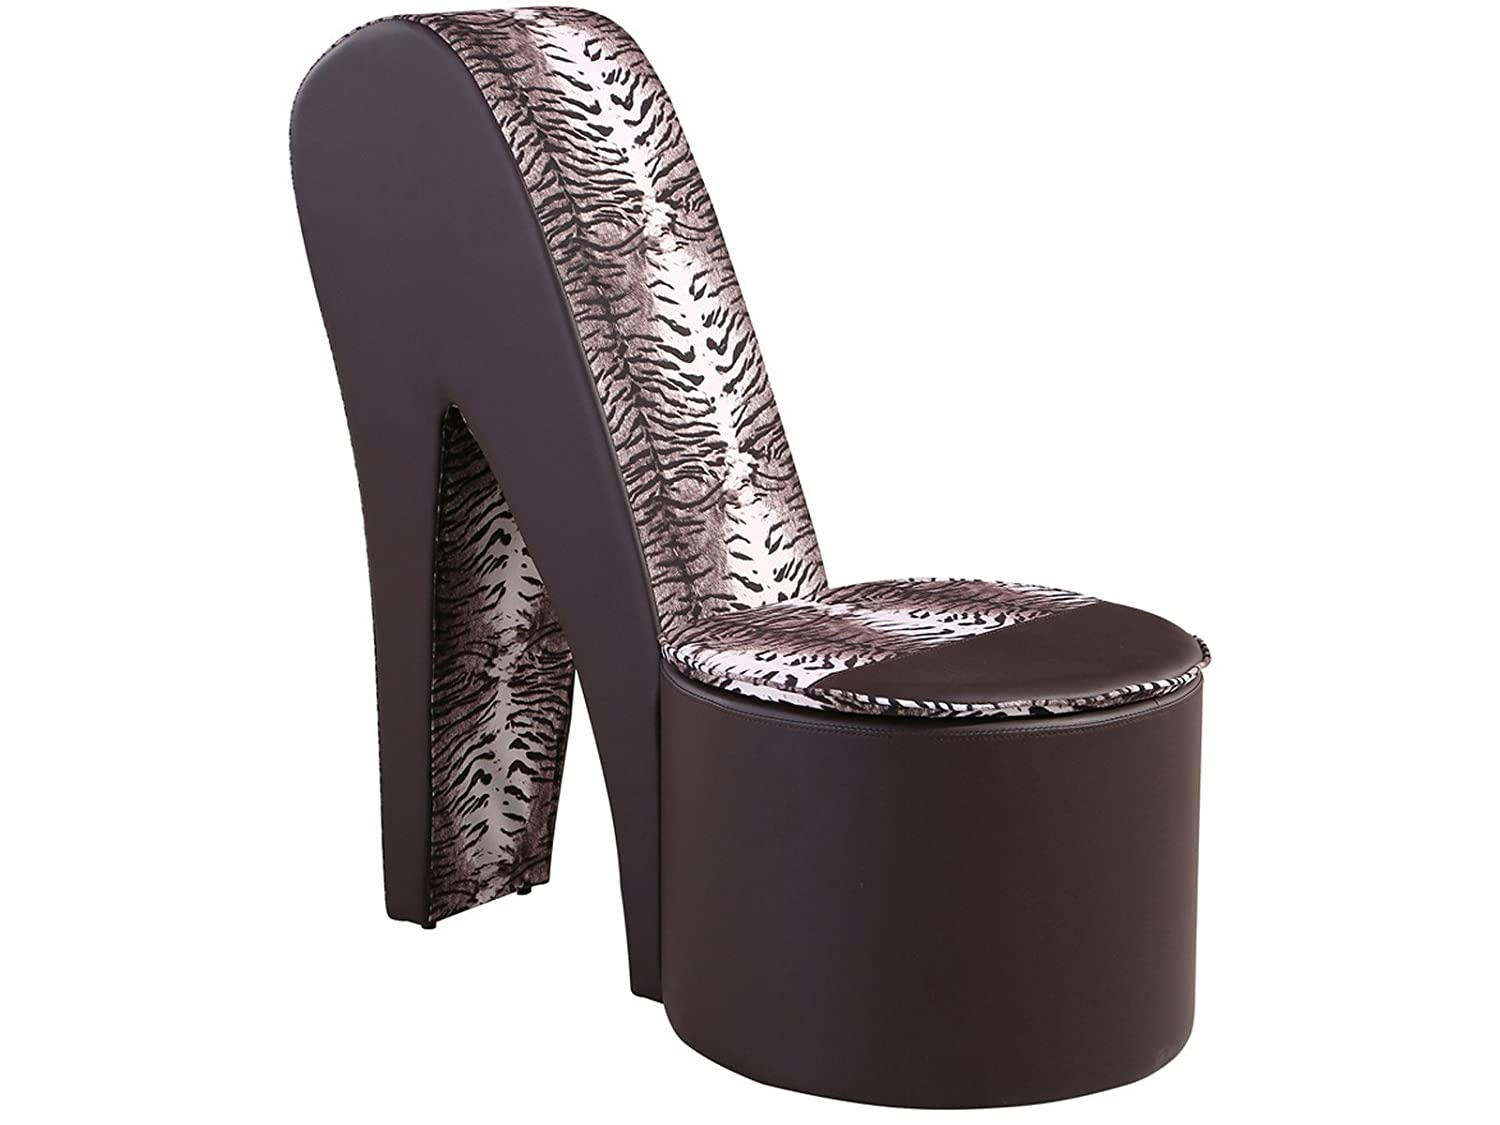 Stiletto shoe chair - Stiletto Shoe Chair With Storage Faux Leather Girls High Heel Bedroom Seat Brown Amazon Co Uk Kitchen Home